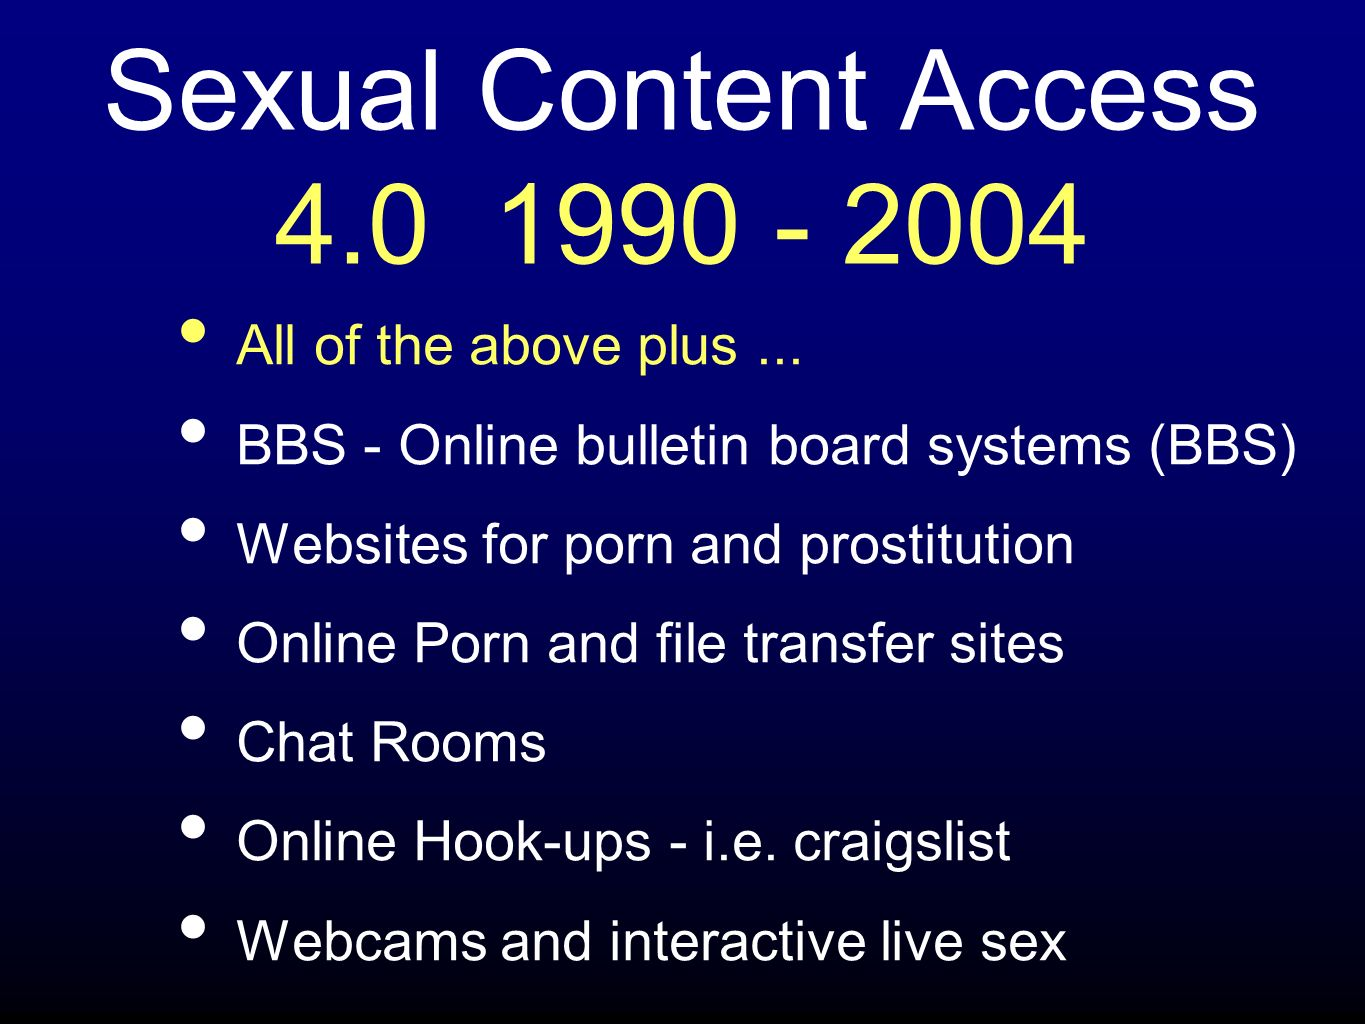 Sexual Content Access 4.0 1990 - 2004